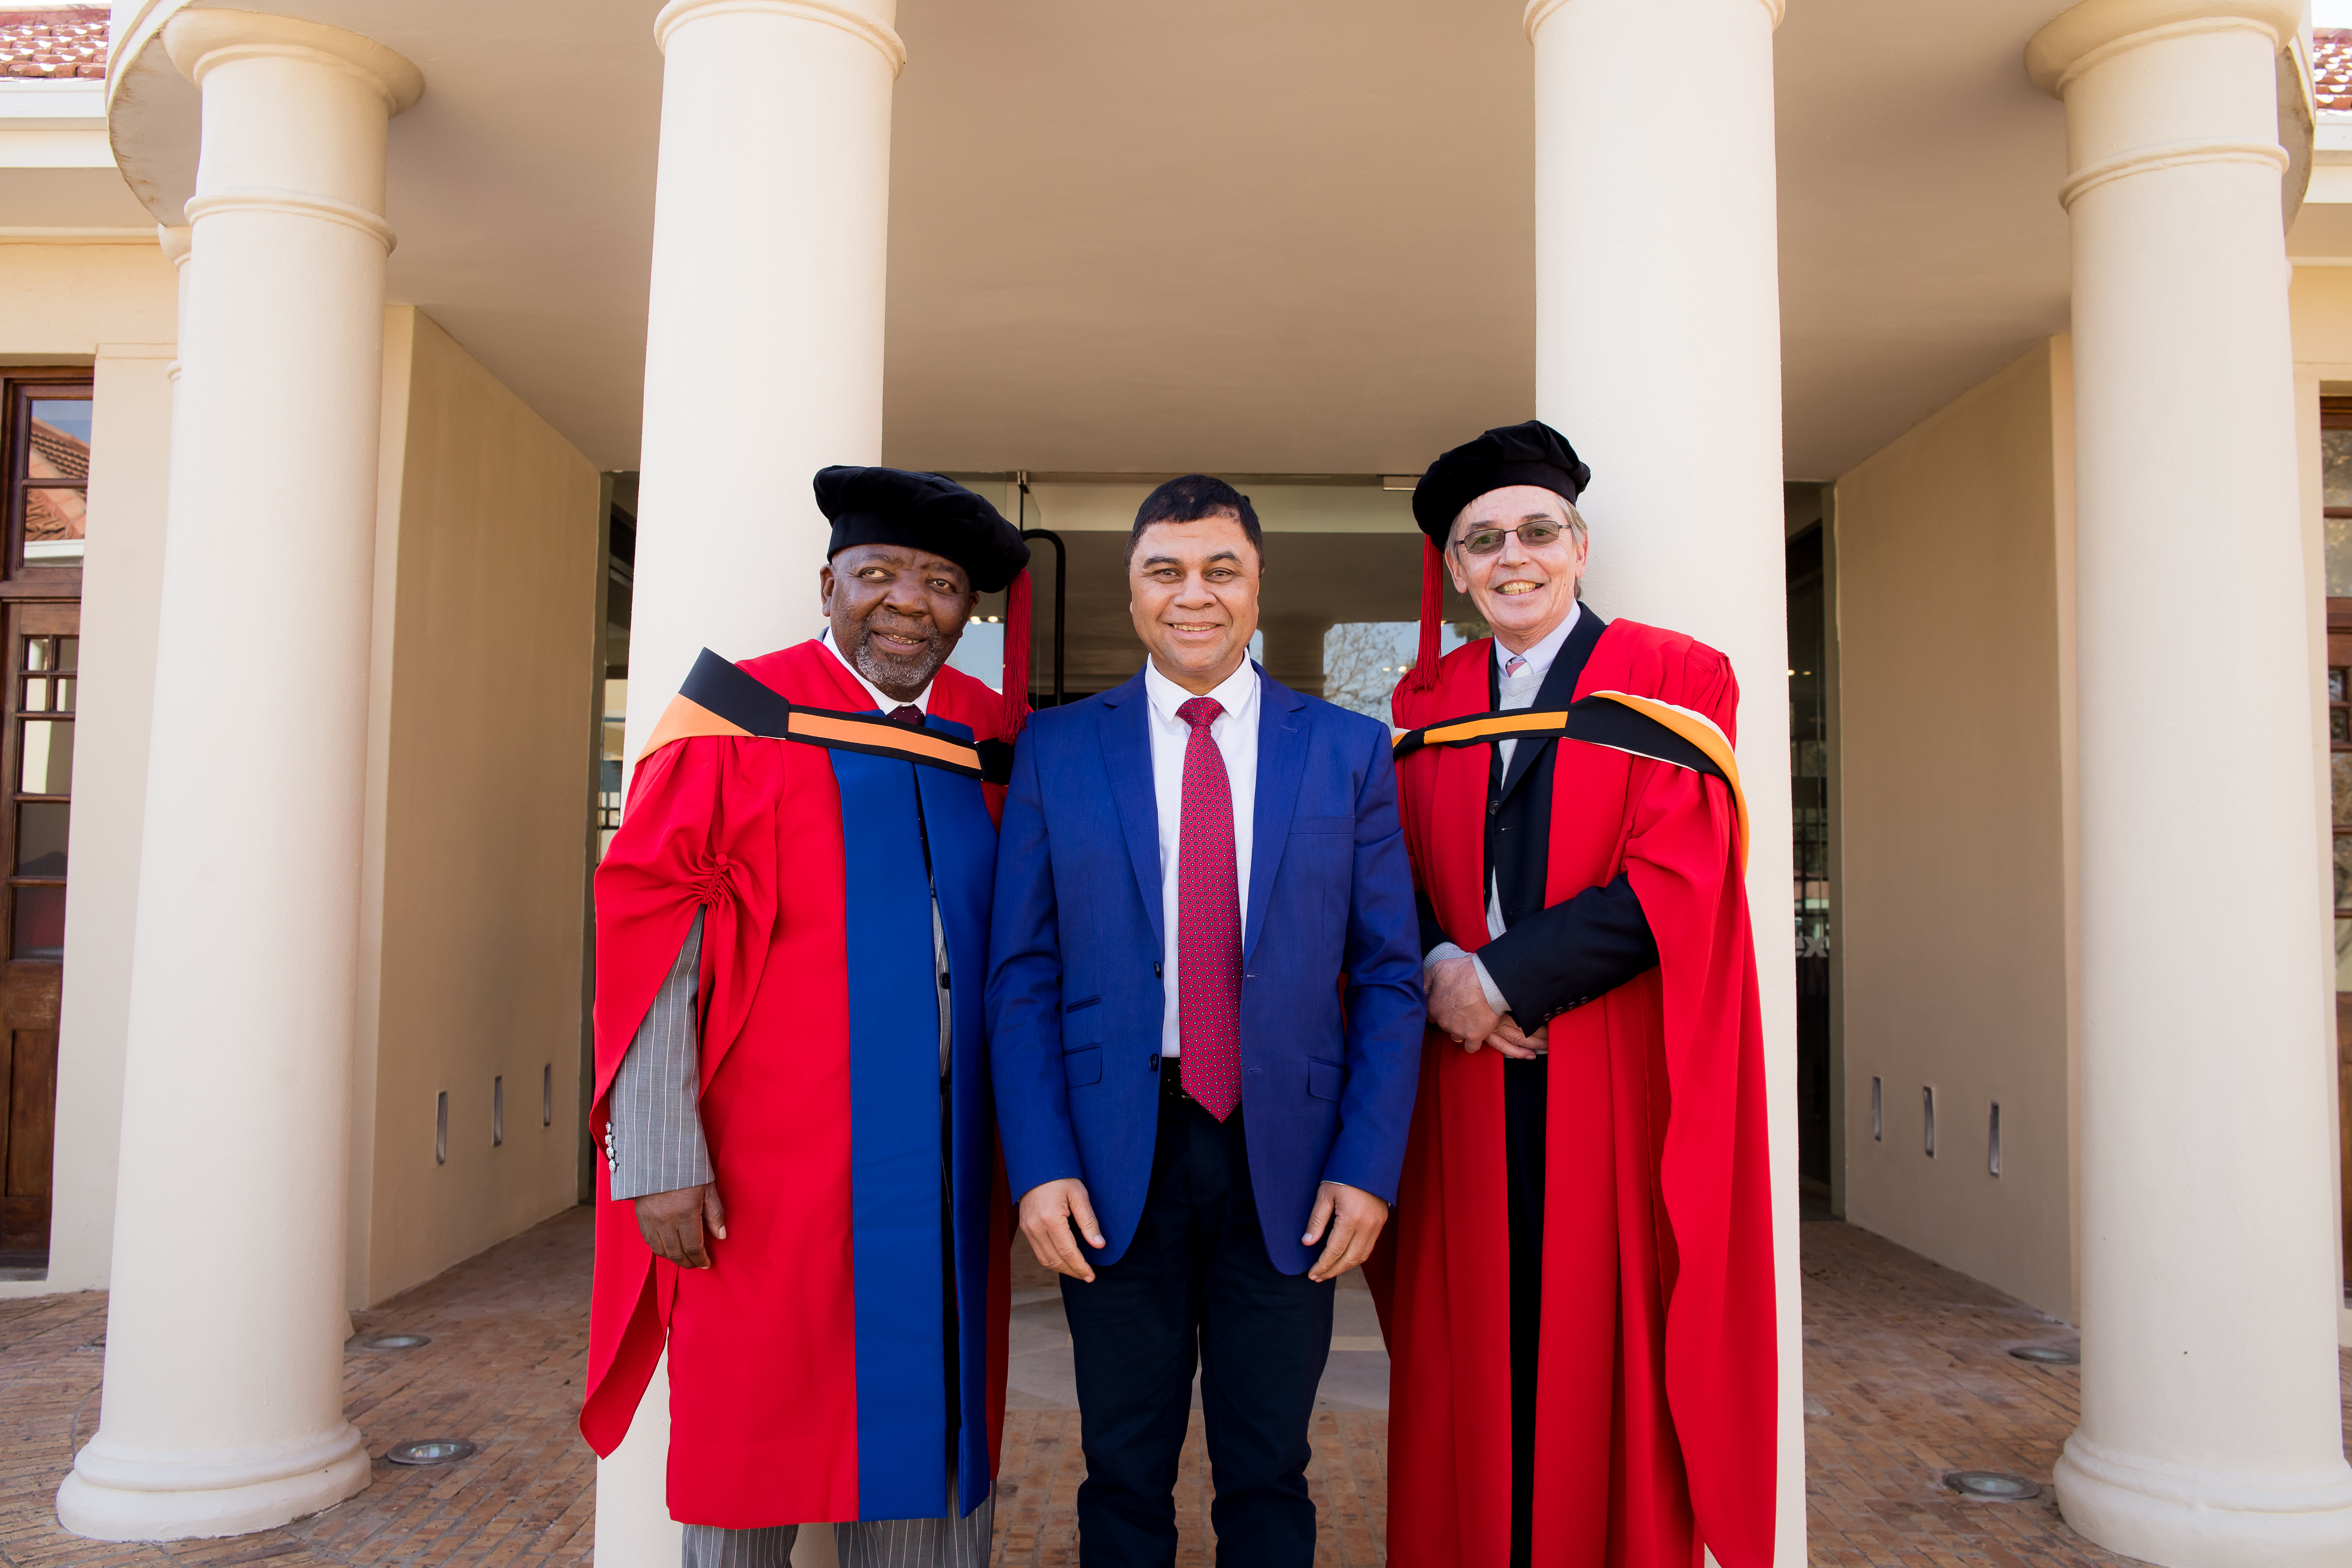 Dr Jerry Mofokeng Wa Makhetha, Prof Francis Petersen and Prof Nico Luwes, Head of the Department of Drama and Theatre Arts